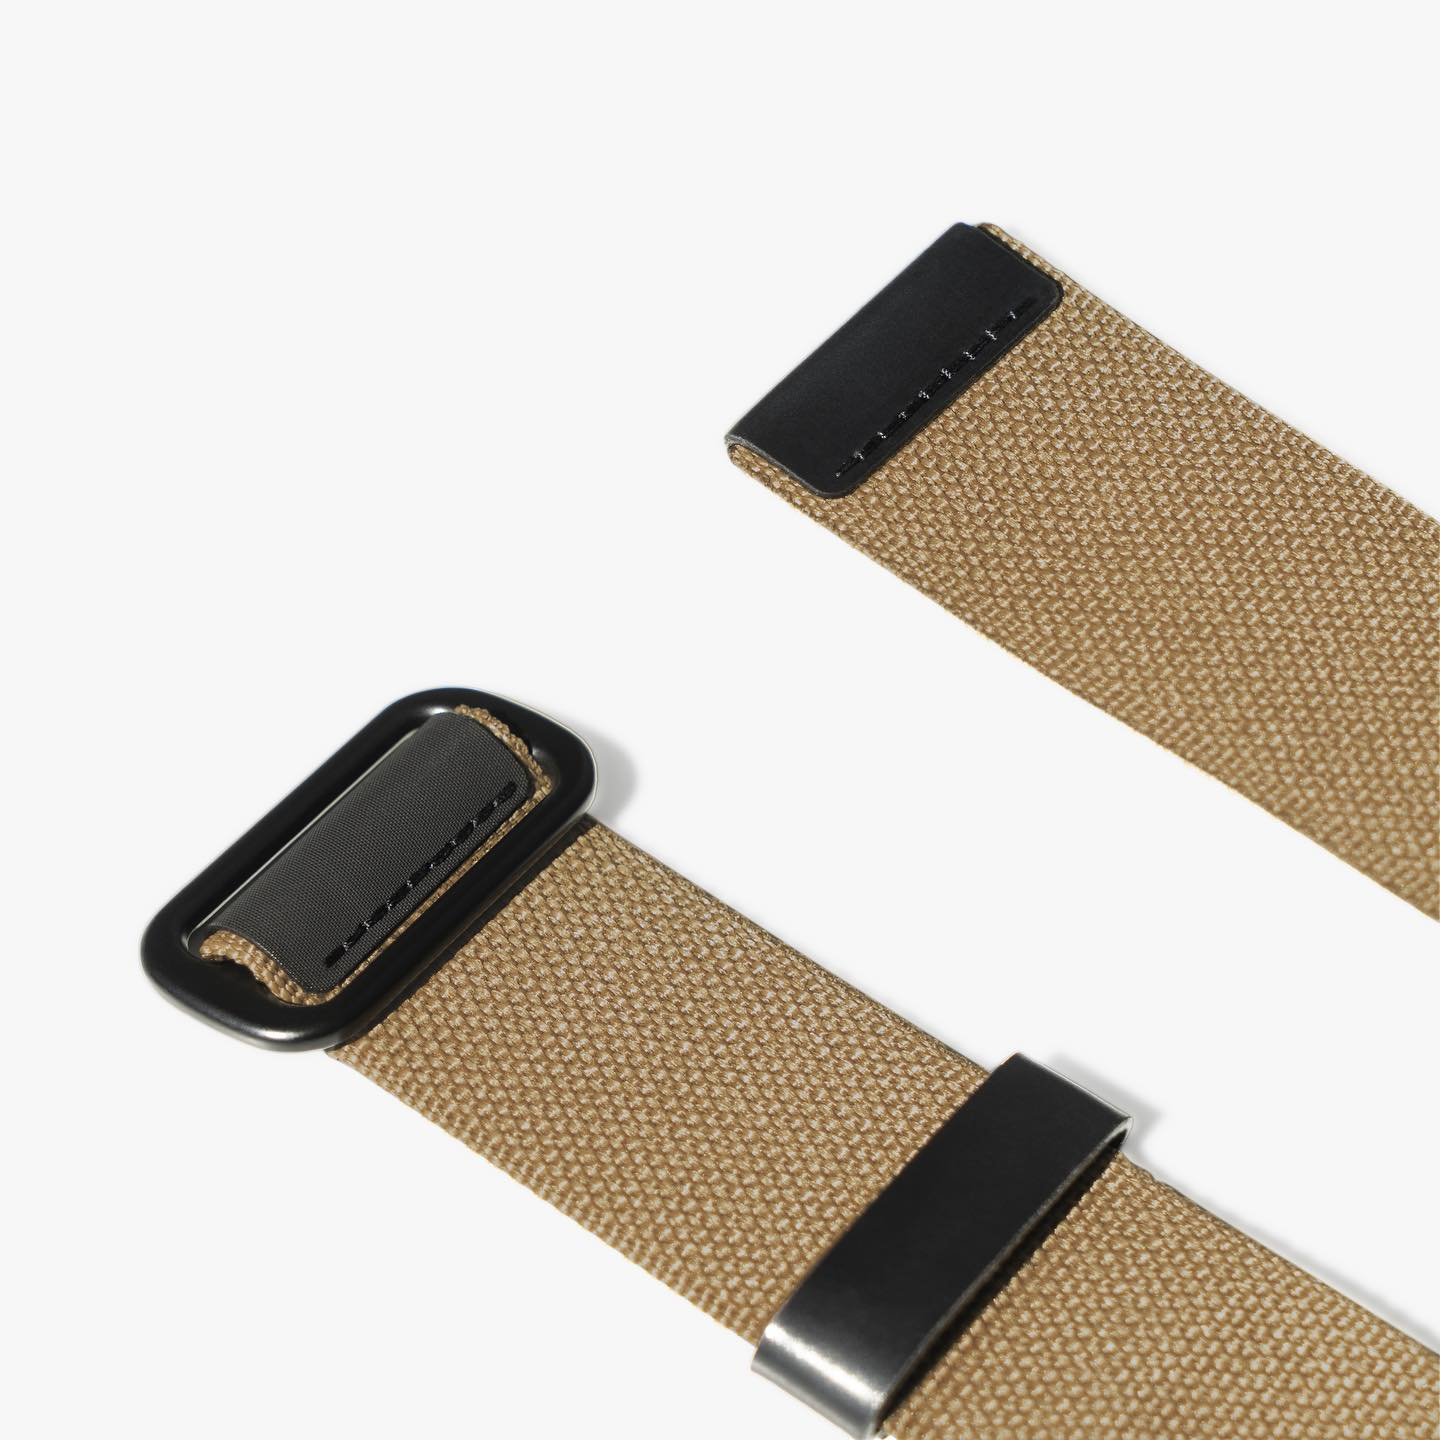 Our new collaborative Tri-Glide Belt with C'H'C'M' is now available in Tan, Army, and Black - $140. @chcm_shop #makrjournal #makrstudio